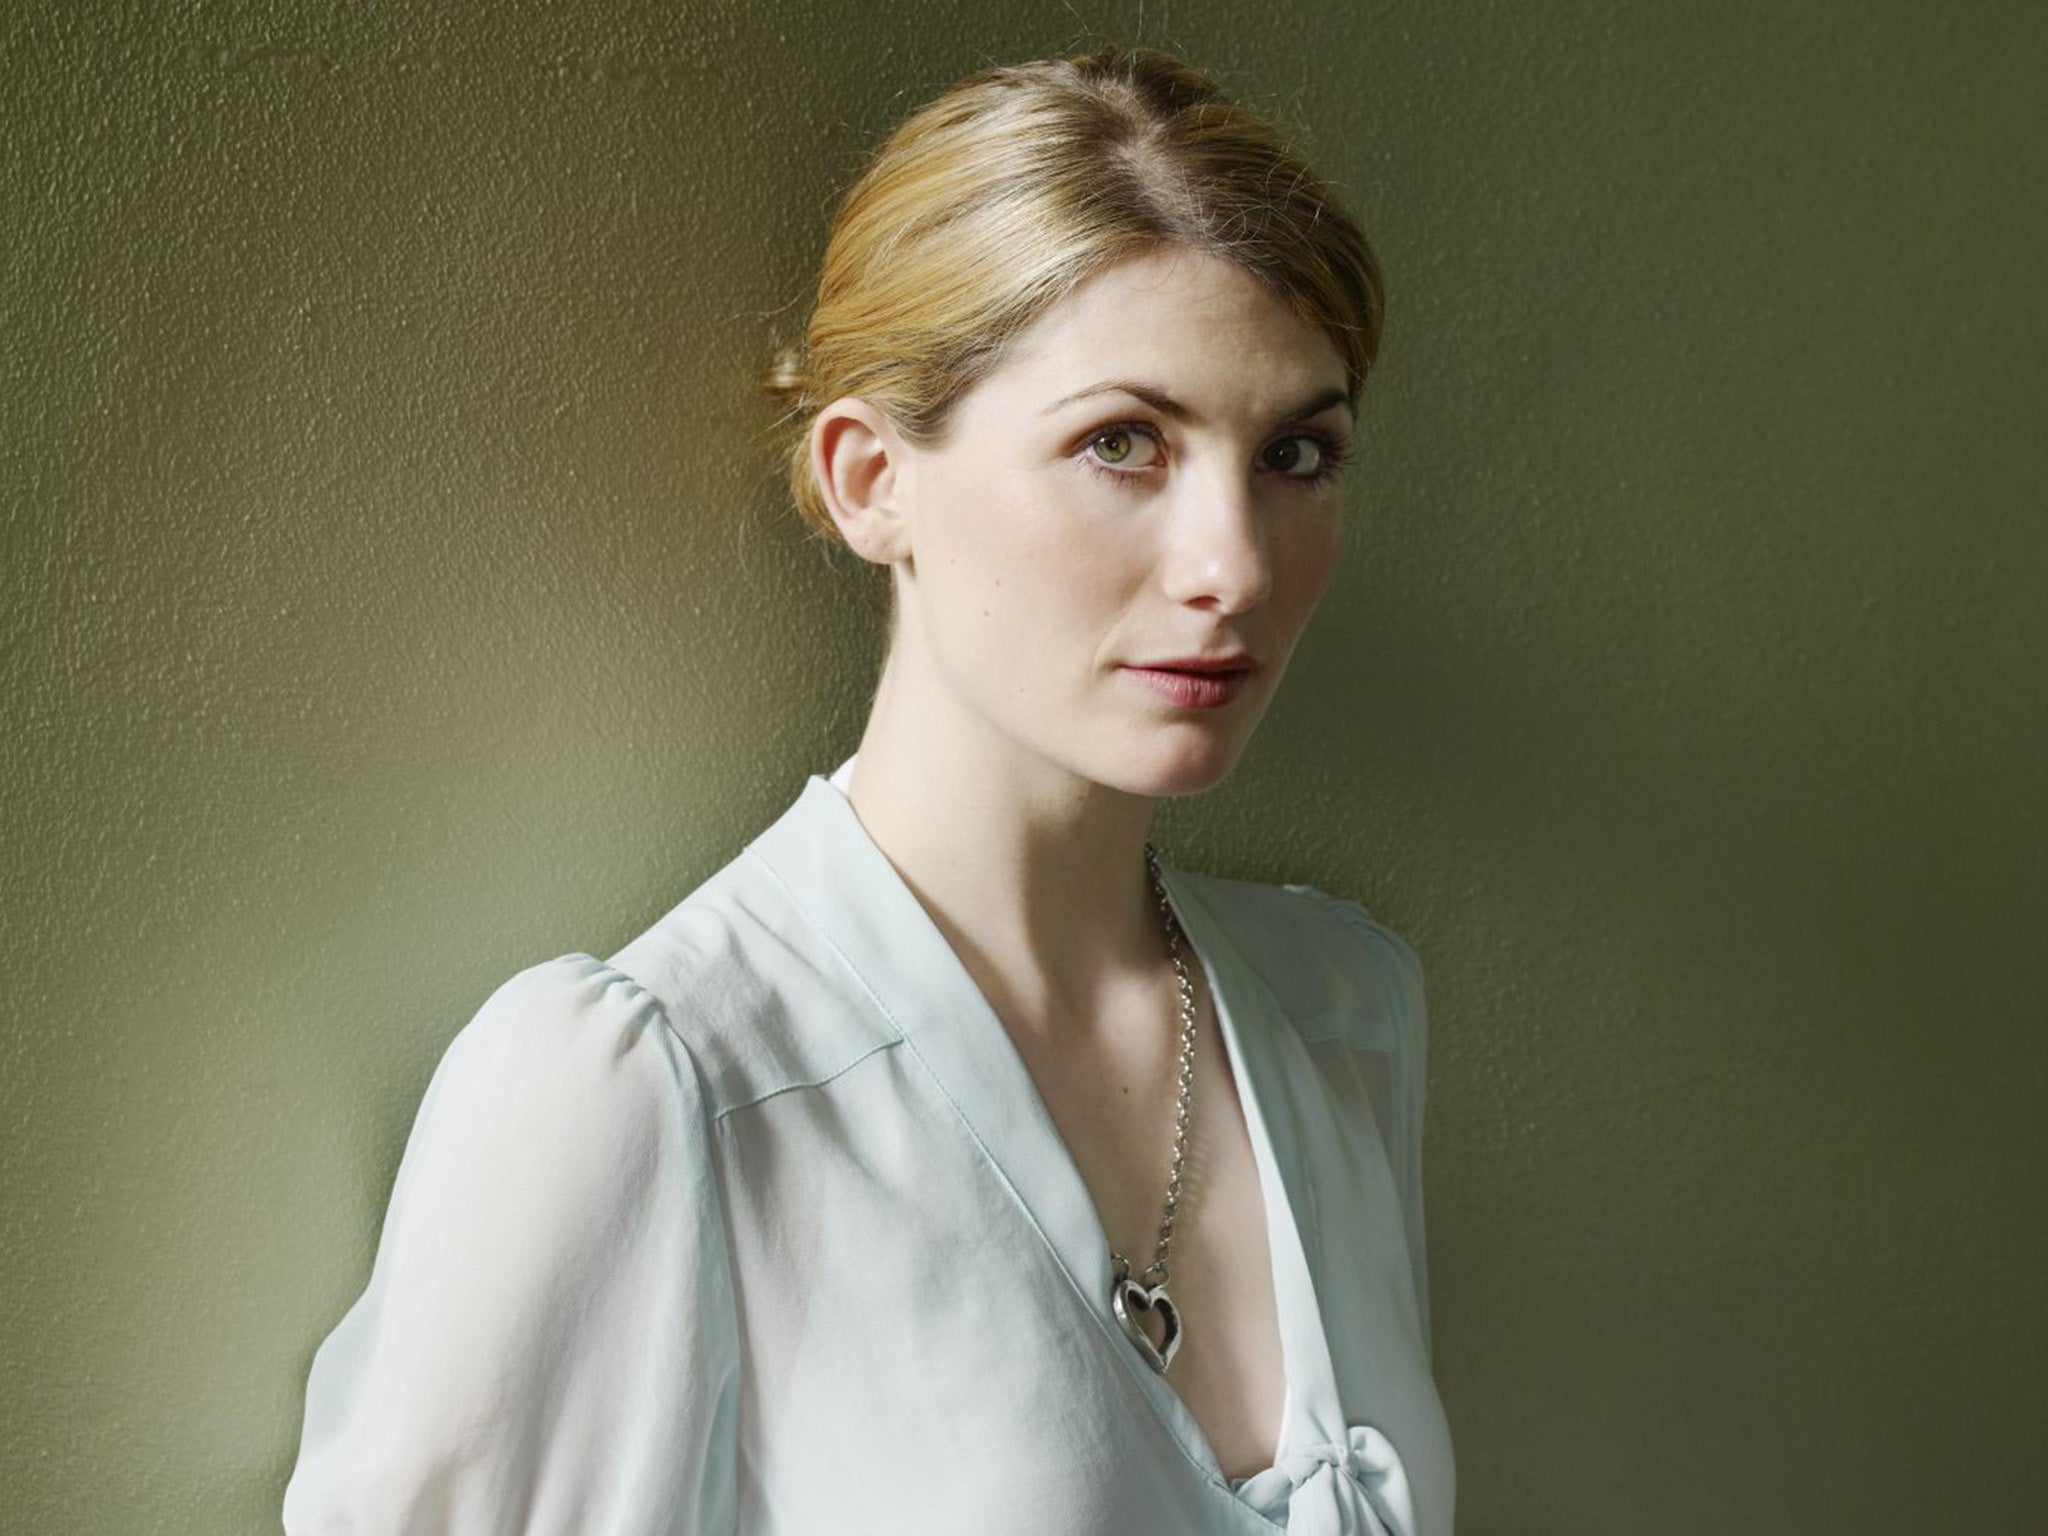 Actress Jodie Whittaker cast as the new Doctor Who